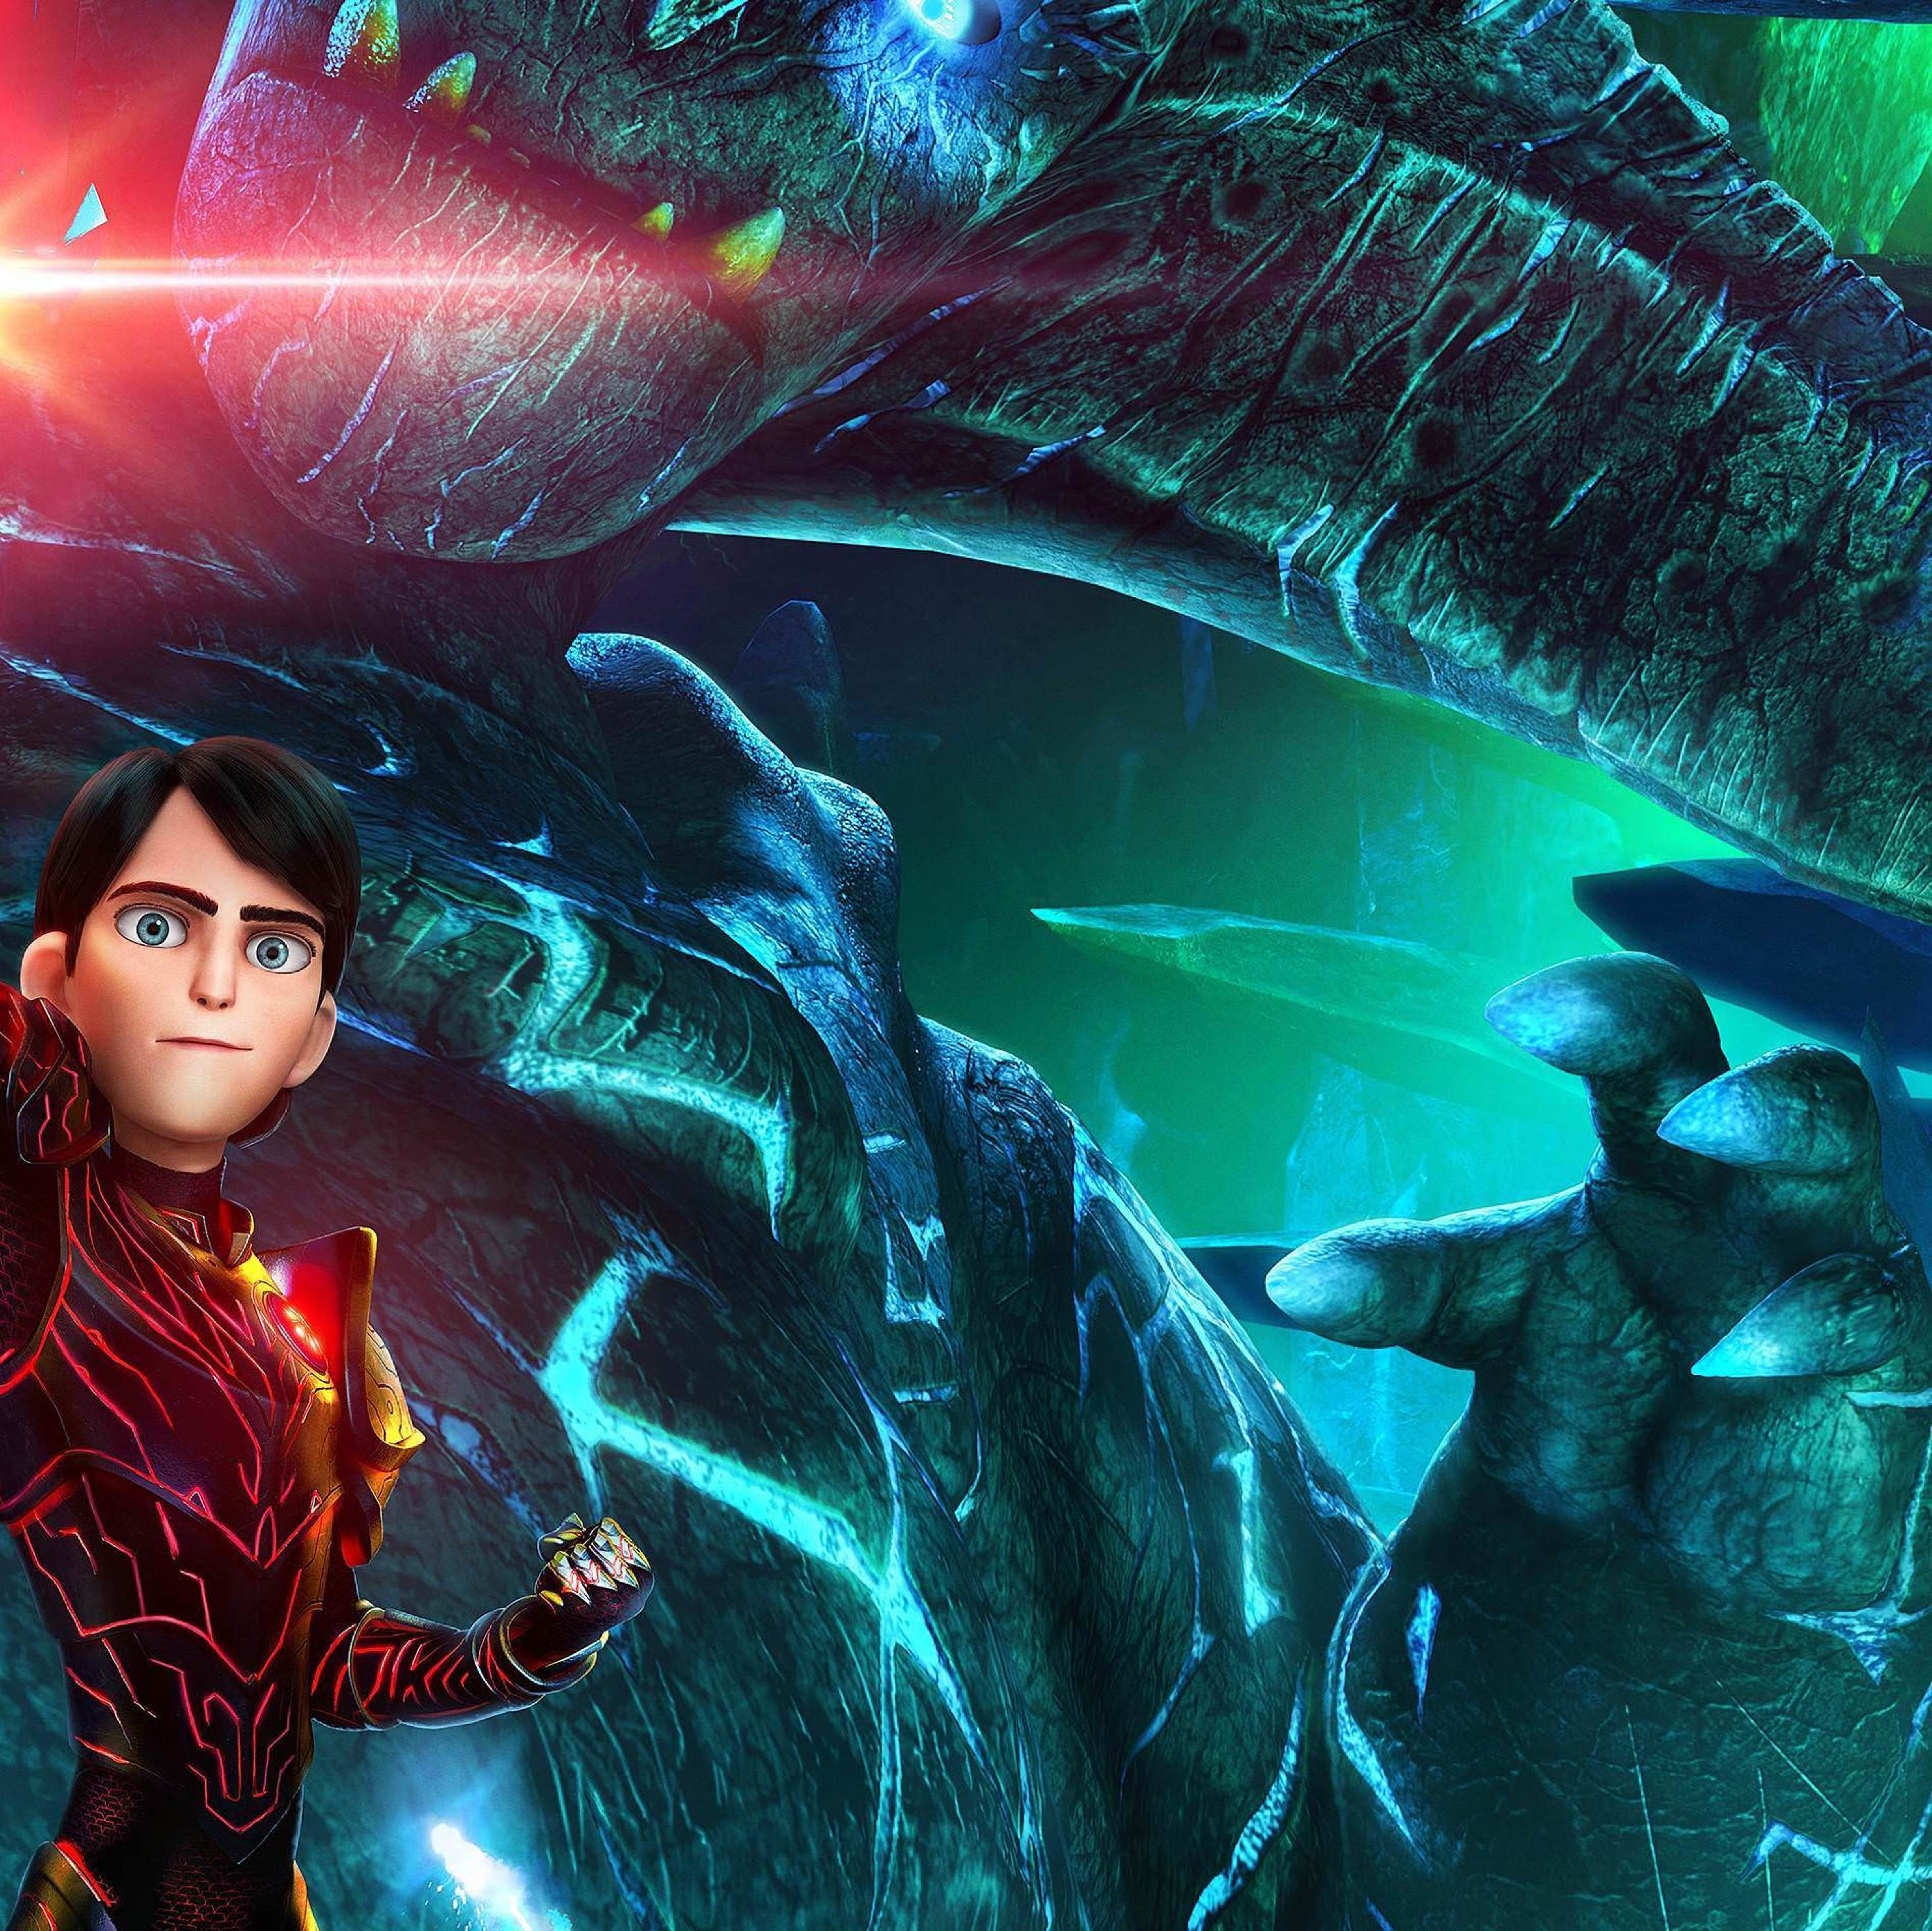 Trollhunters Season 2, HD 4K Wallpaper